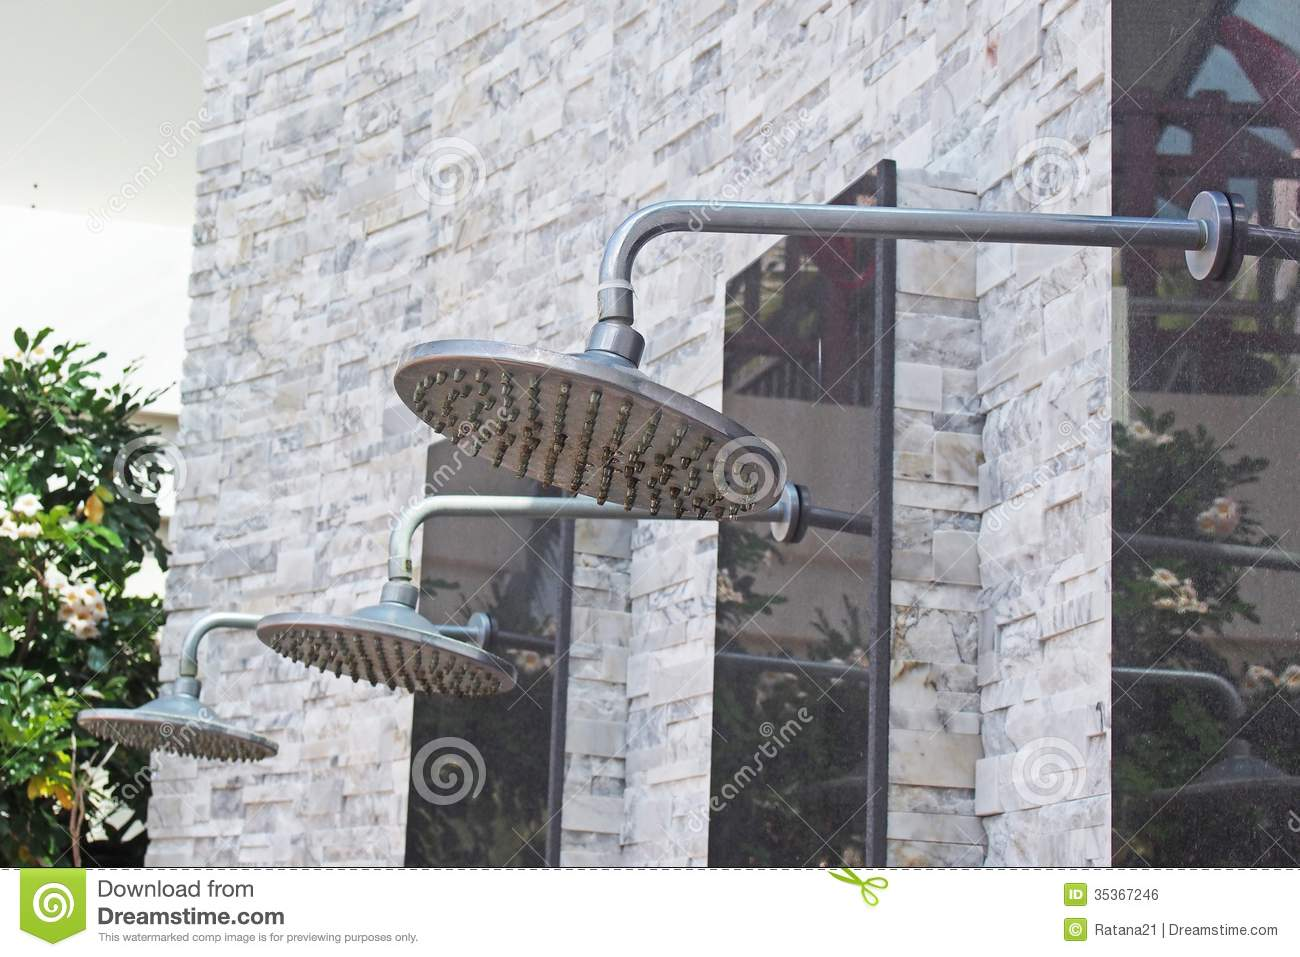 Outdoor shower stock photo. Image of wall, close, valve - 35367246